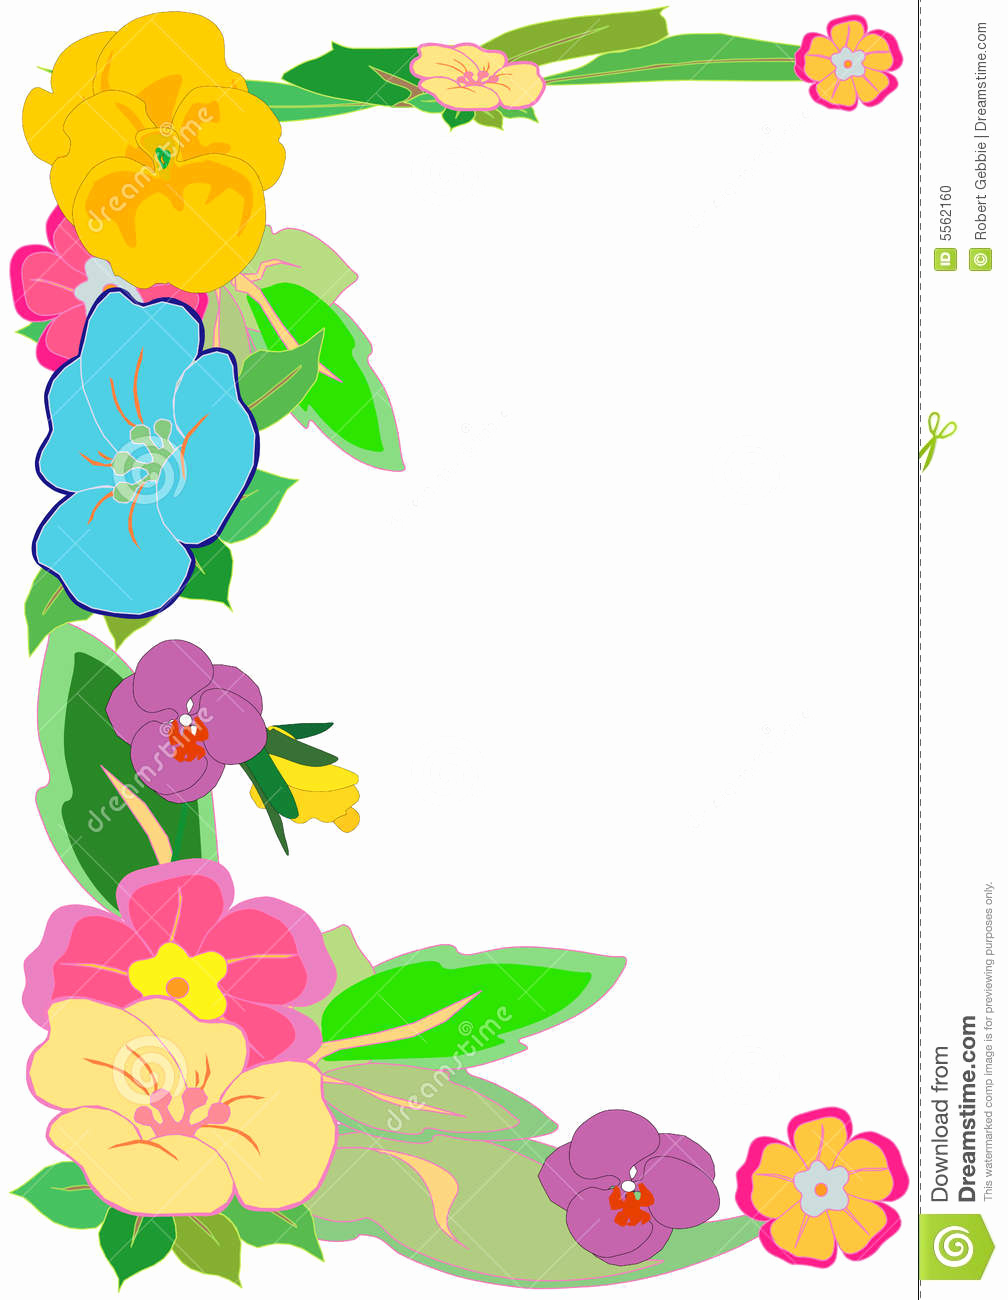 Blank Luau Invitation Borders Best Of Tropical Floral Border Stock Vector Illustration Of